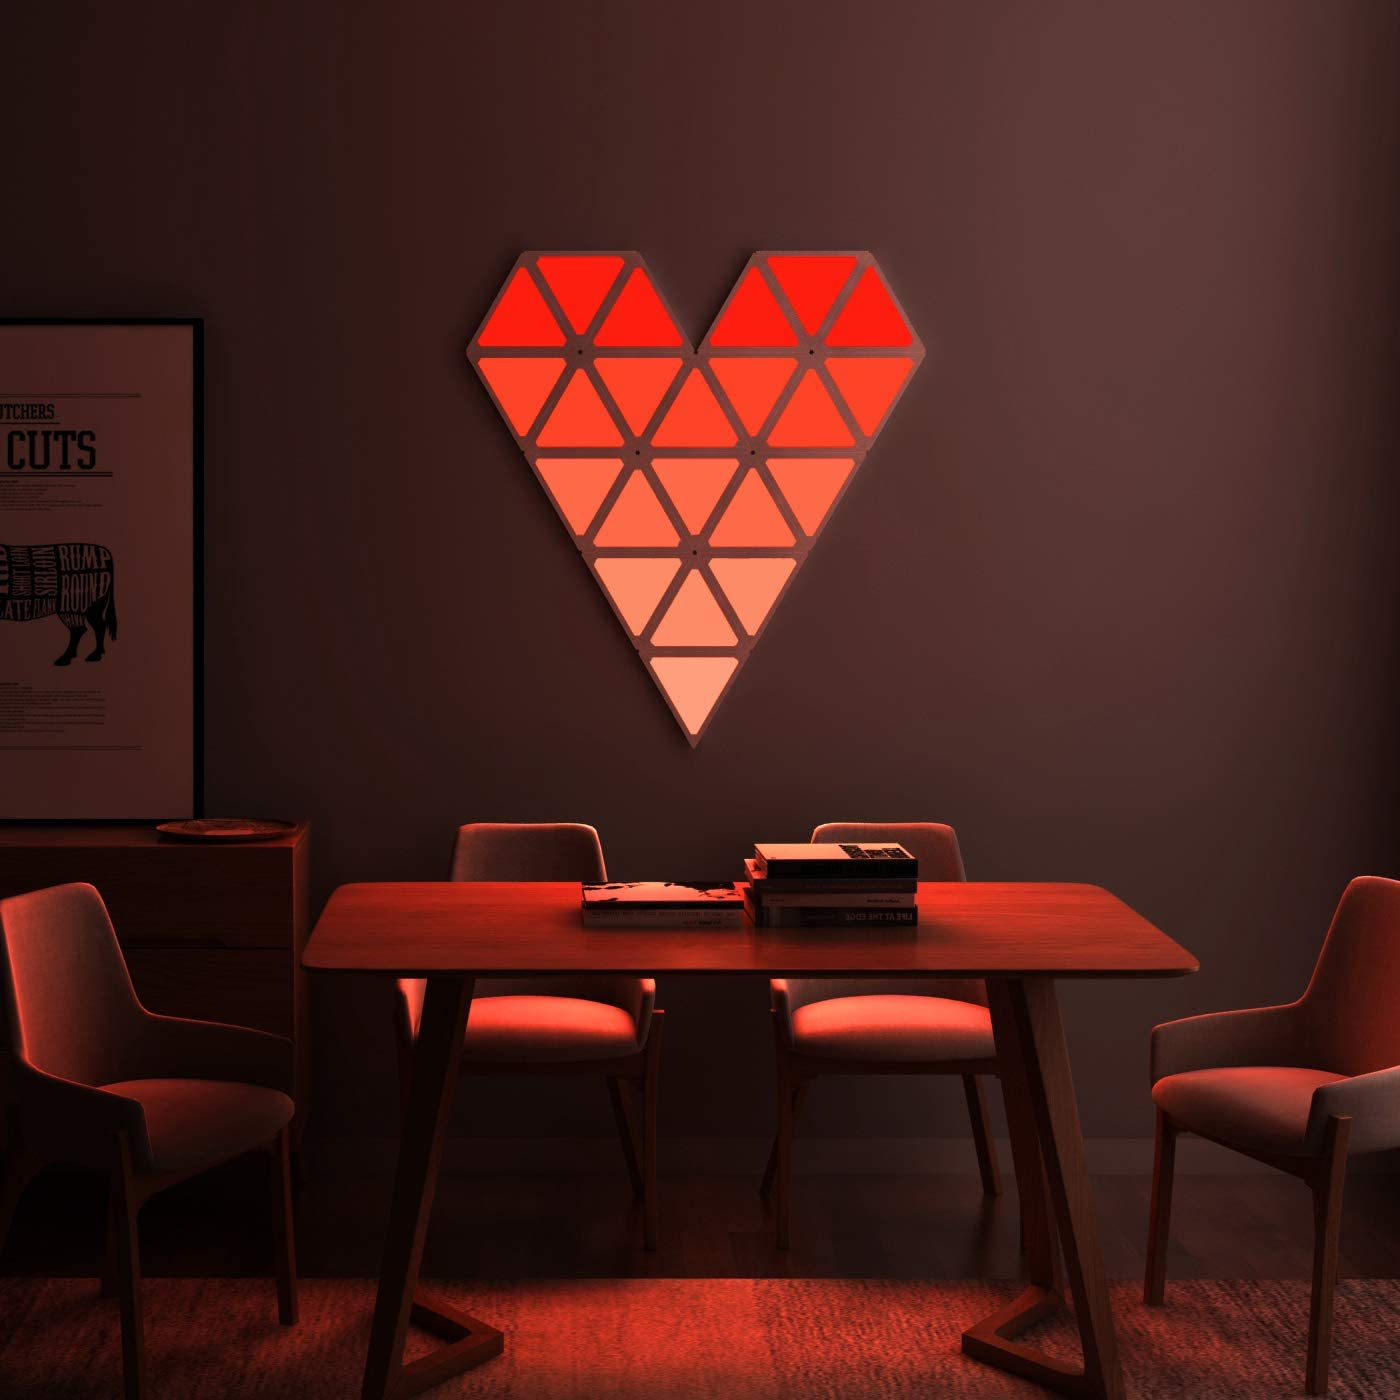 Triangle Wall Light Smart LED Modular Light Panels Touch-Sensitive Multicolor RGBW Night Light for Room Gaming Room Party Decor enlarge